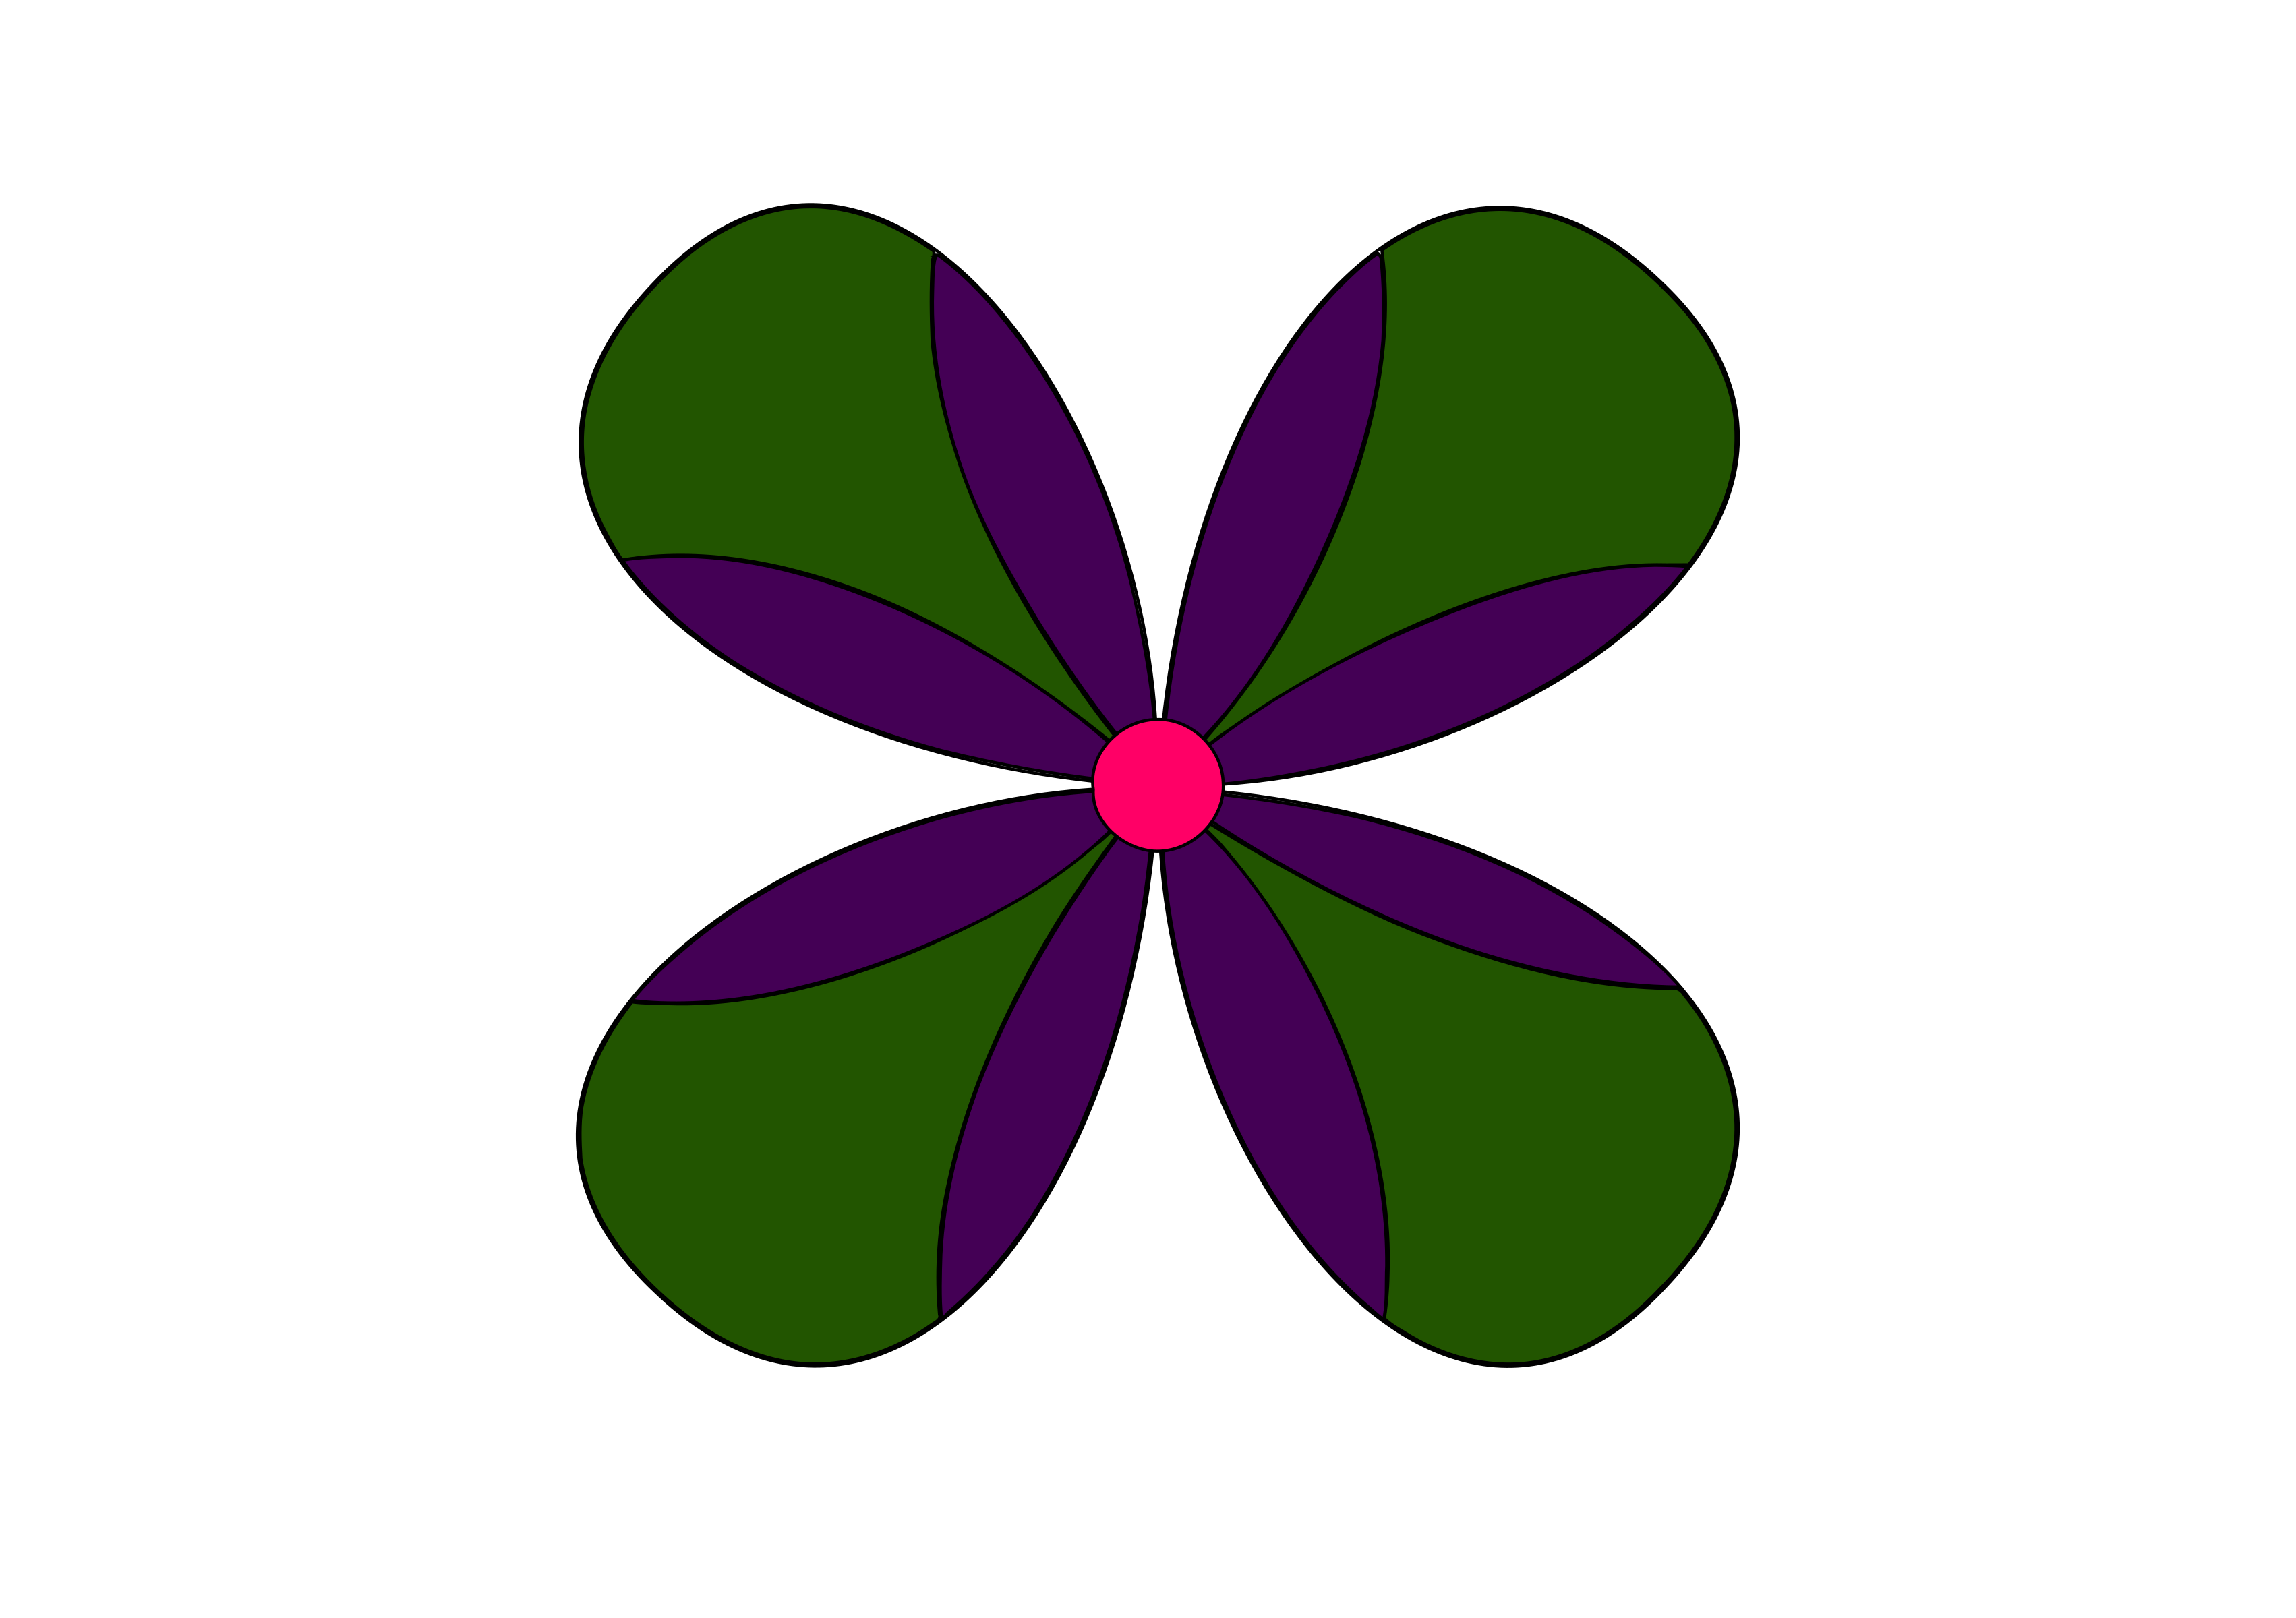 Purple & Green Flower by Siddymcbill